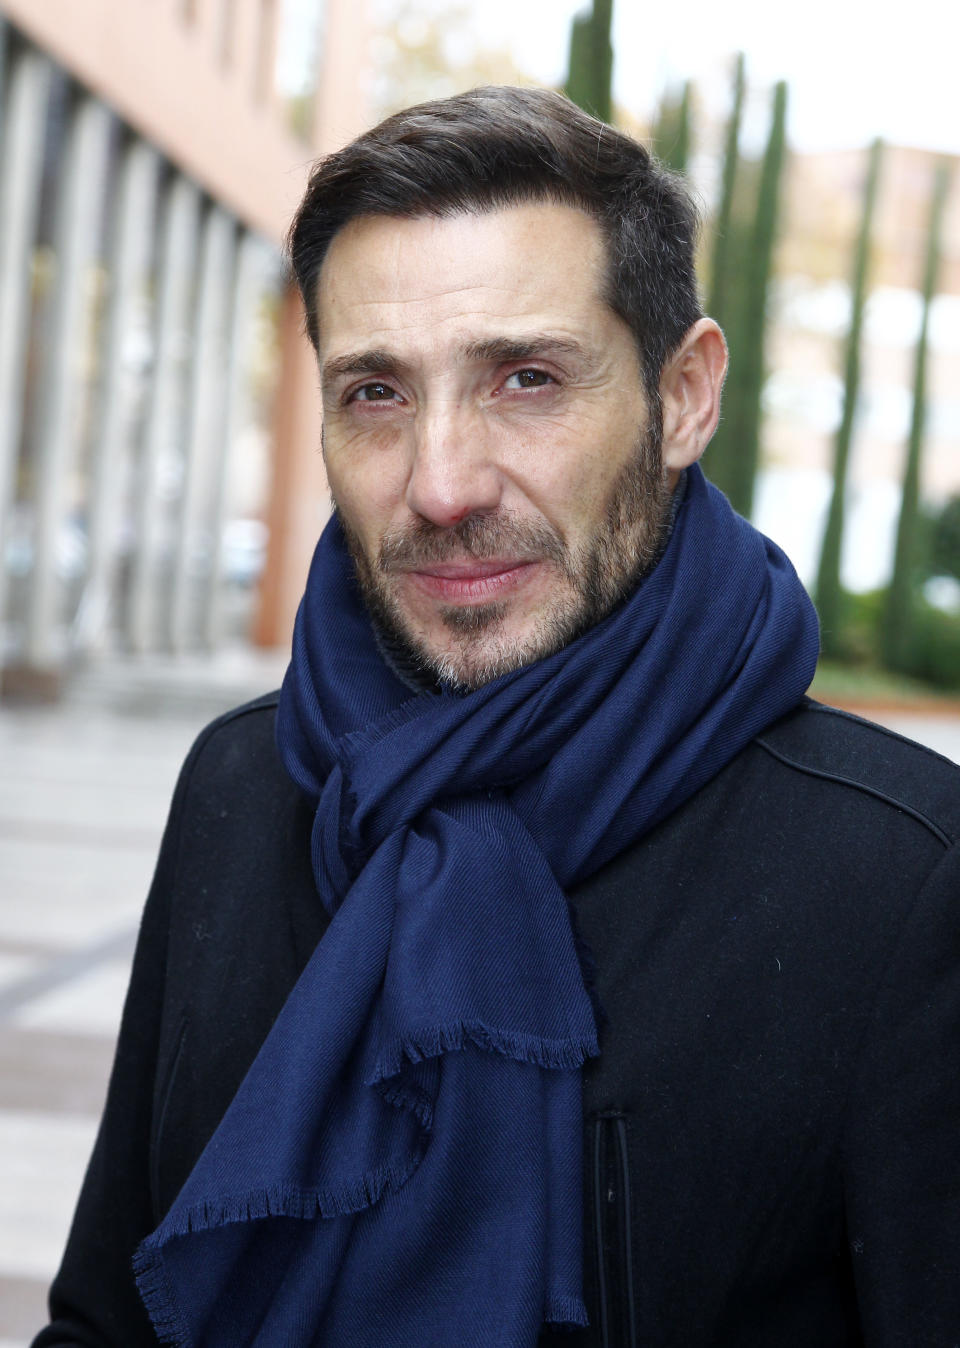 MADRID, SPAIN - DECEMBER 04: Antonio David Flores is seen on December 04, 2019 in Madrid, Spain. (Photo by Europa Press Entertainment/Europa Press via Getty Images)